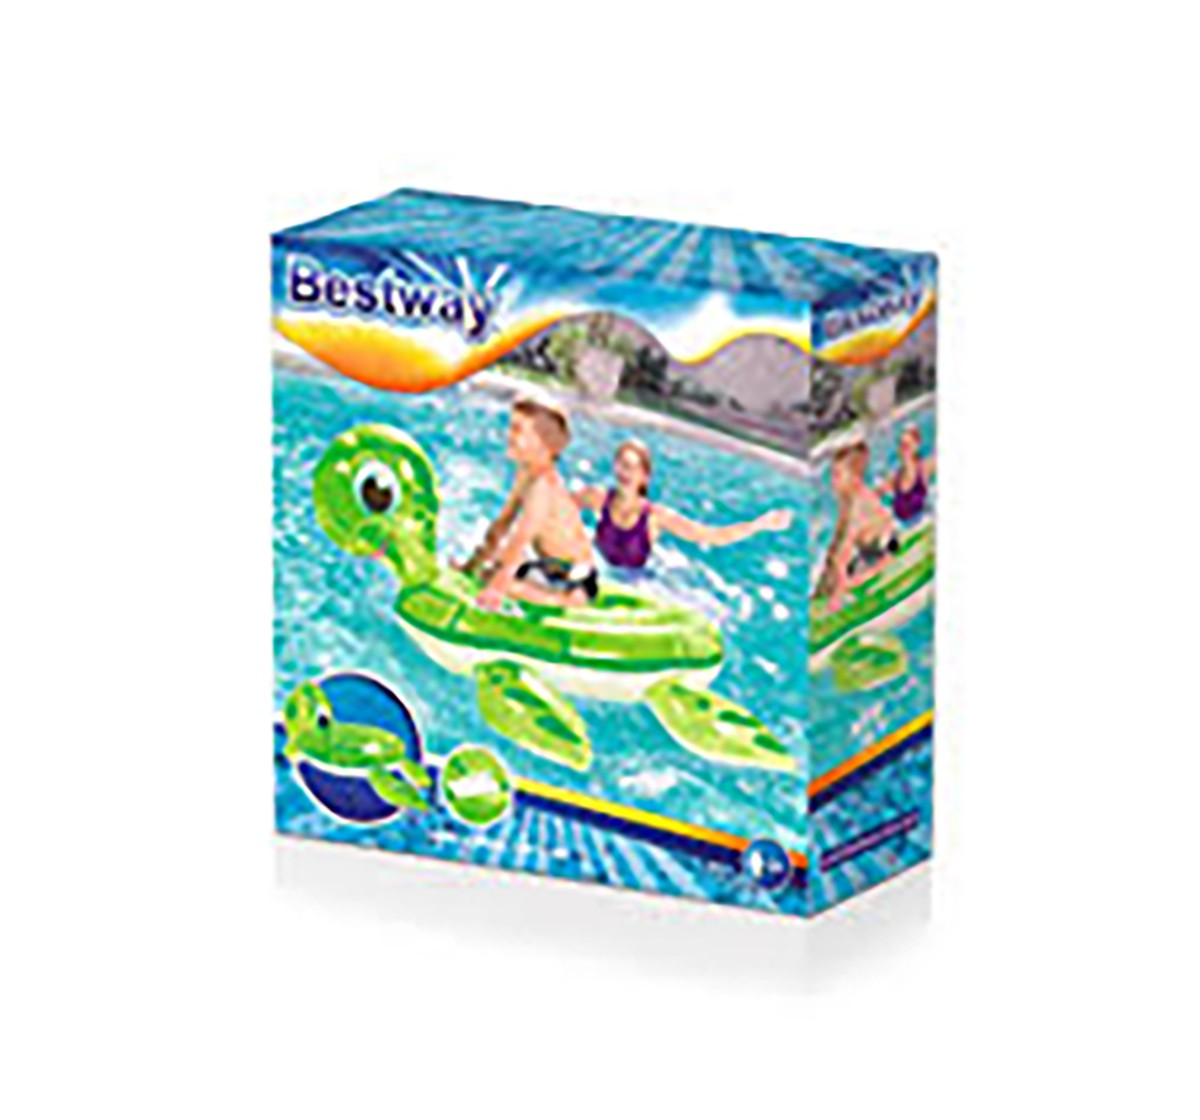 Bestway Turtle Rider - 55 X 55 Inches Outdoor Leisure for Kids age 3Y+ (Green)